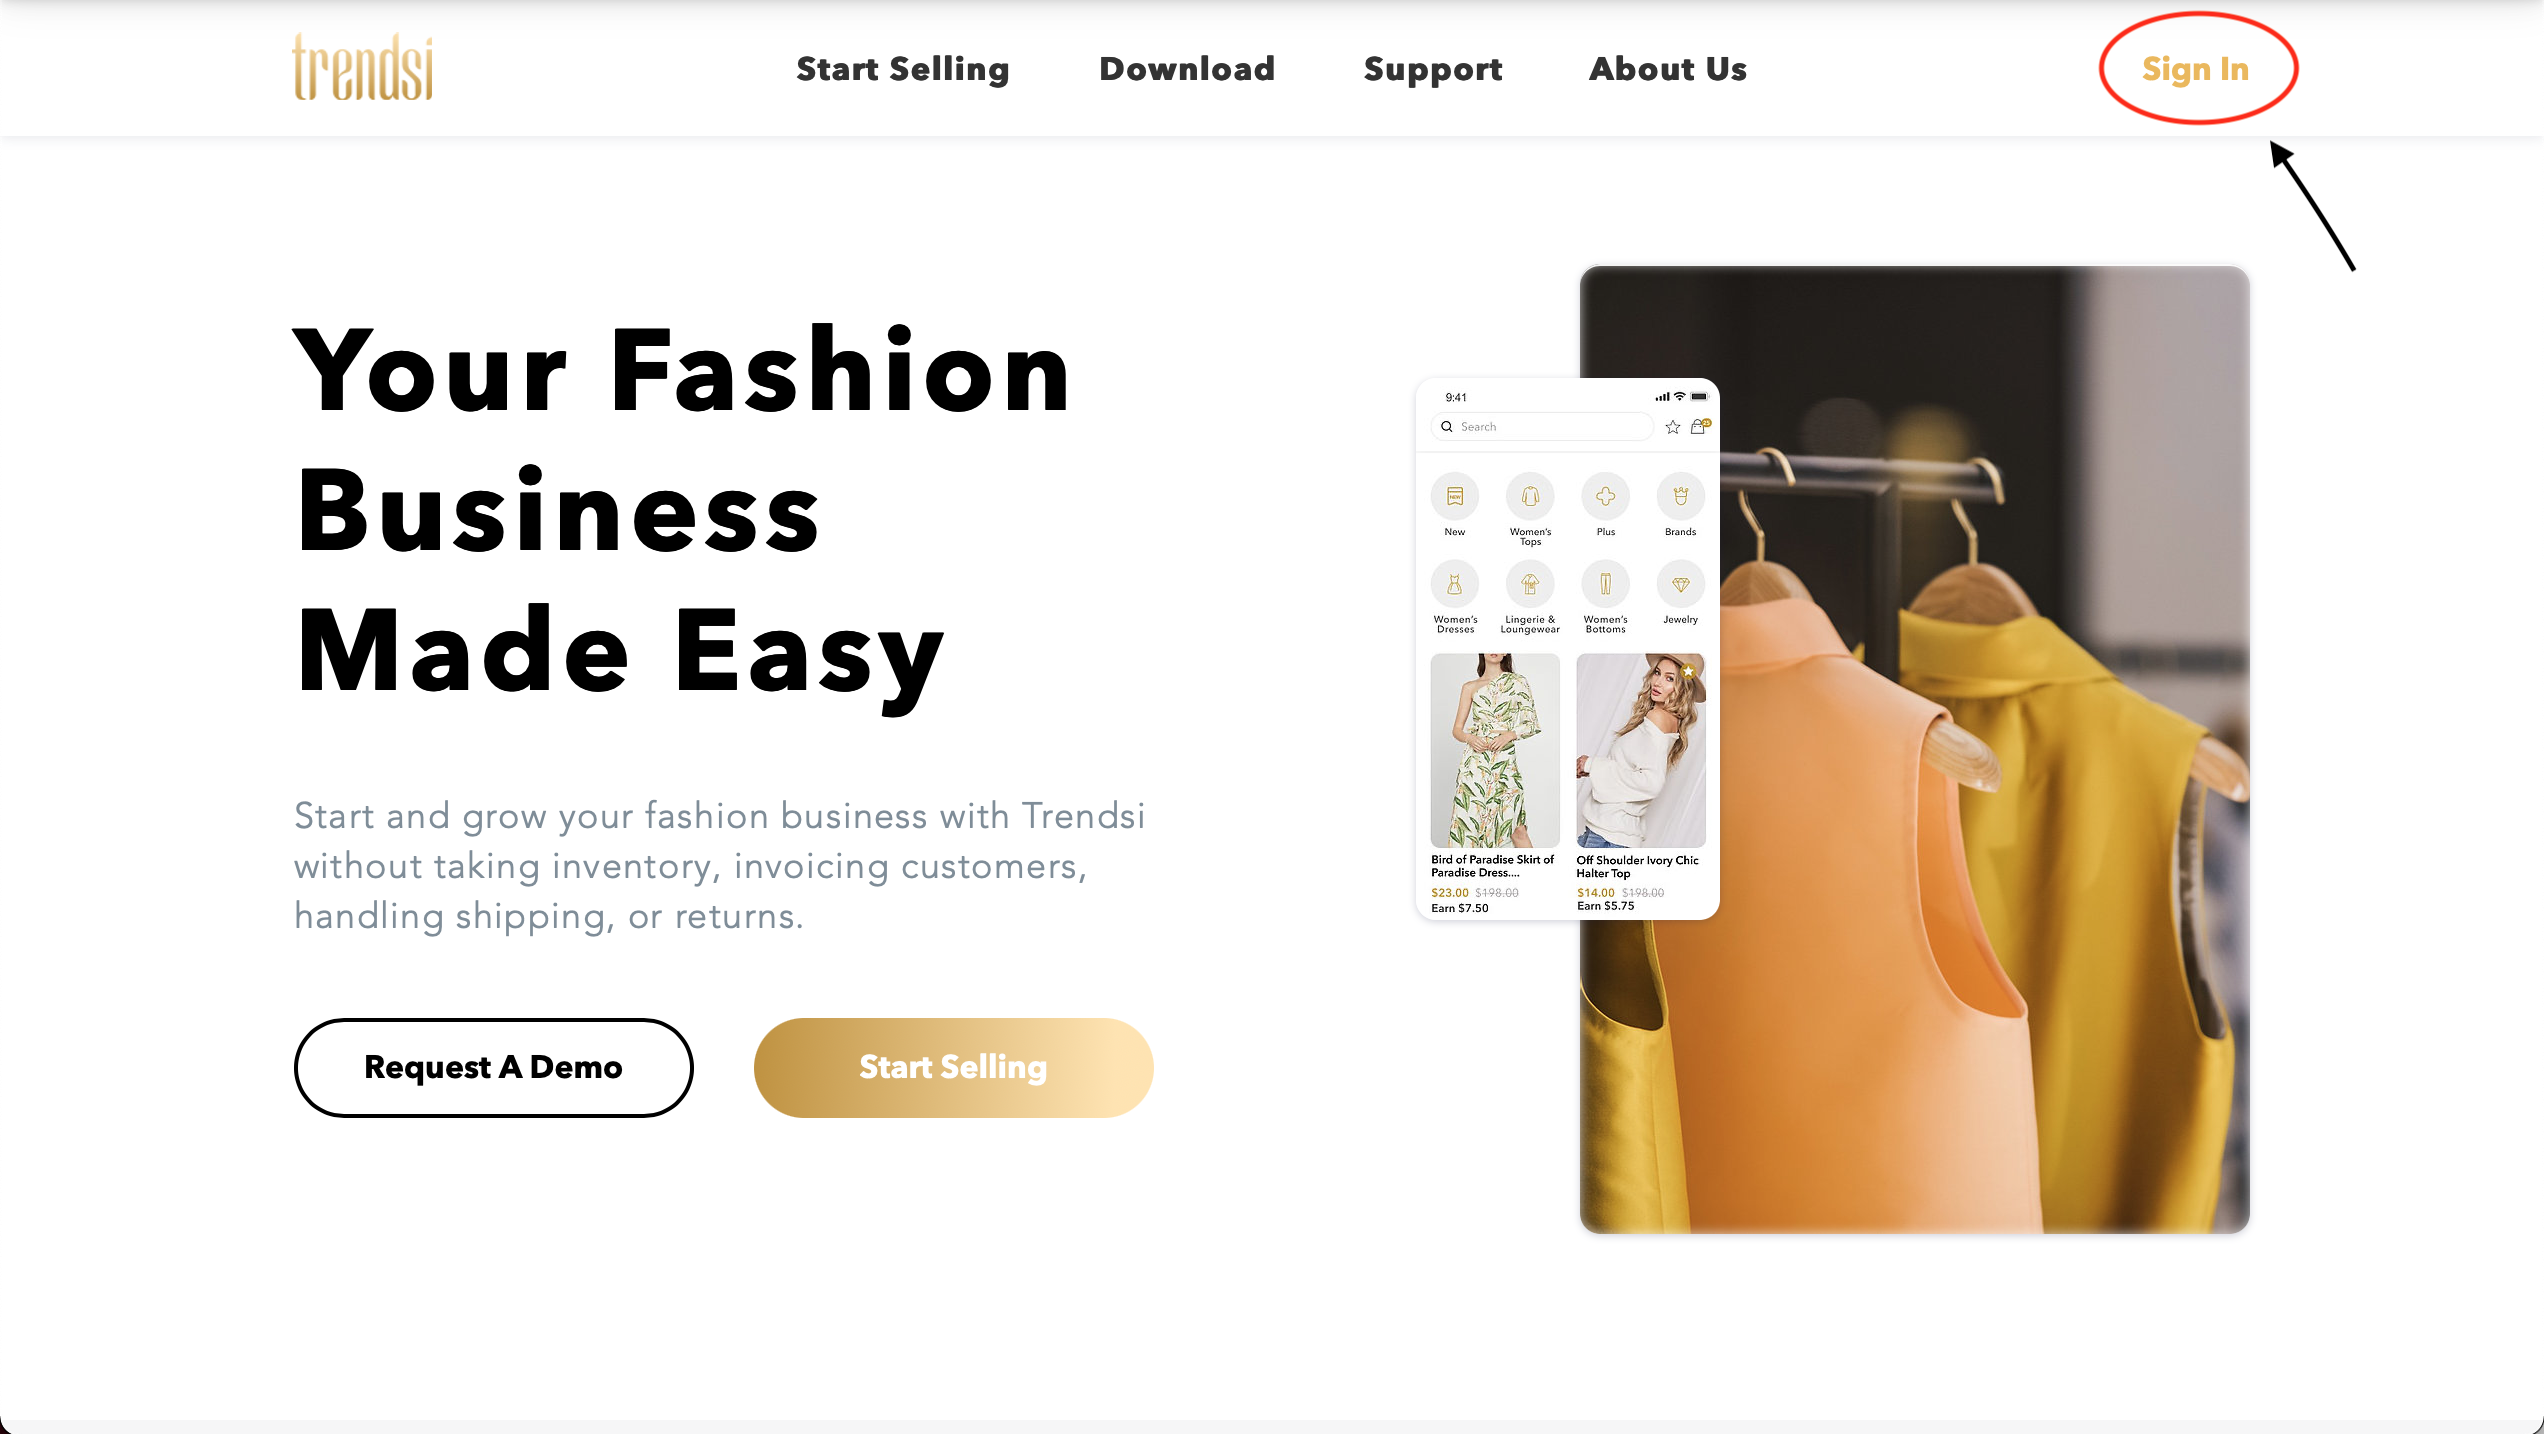 Landing Page Sign In